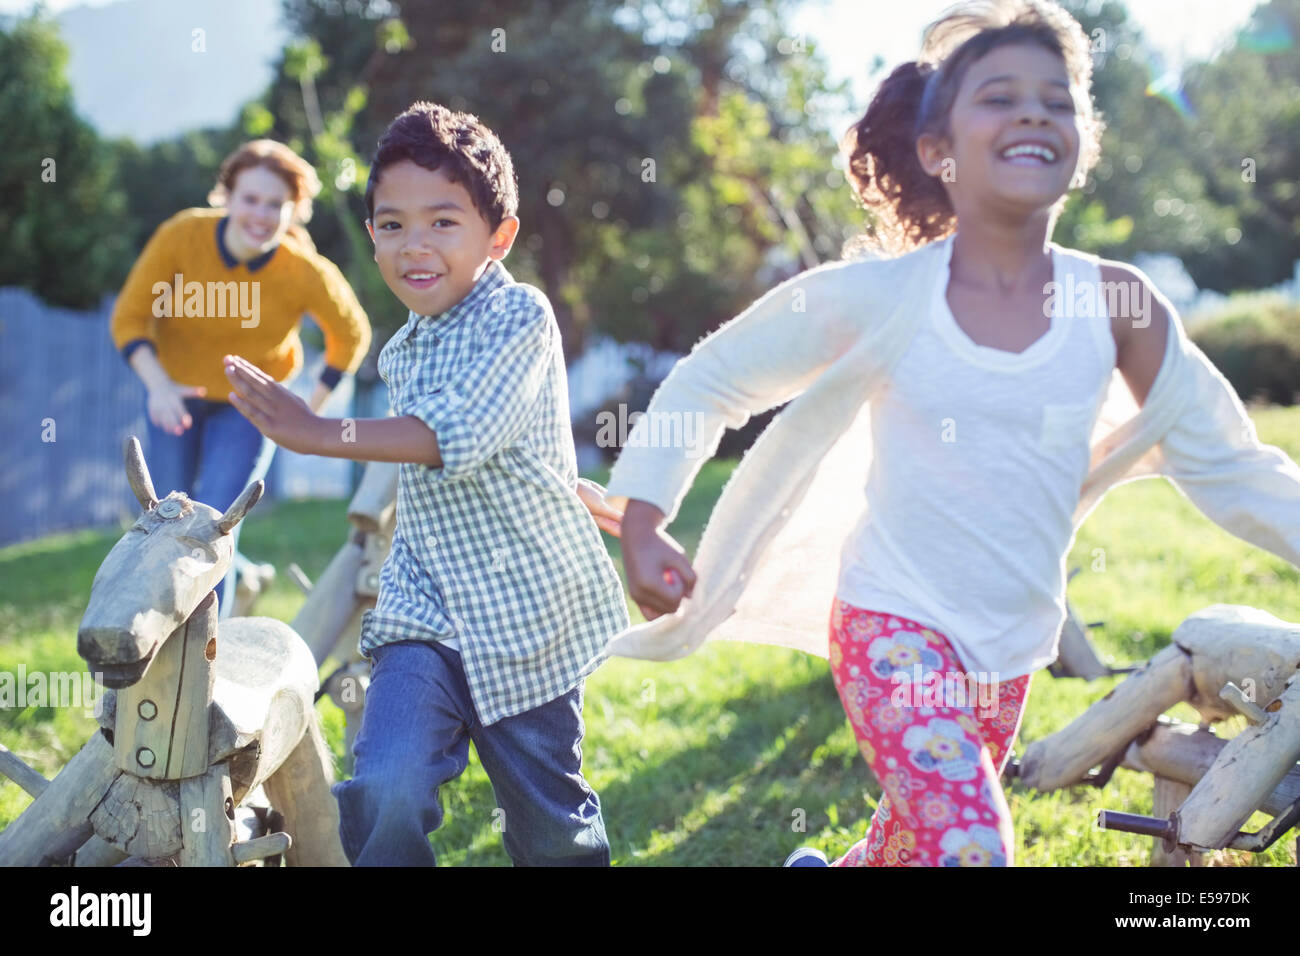 Les enfants courent dans le champ Photo Stock